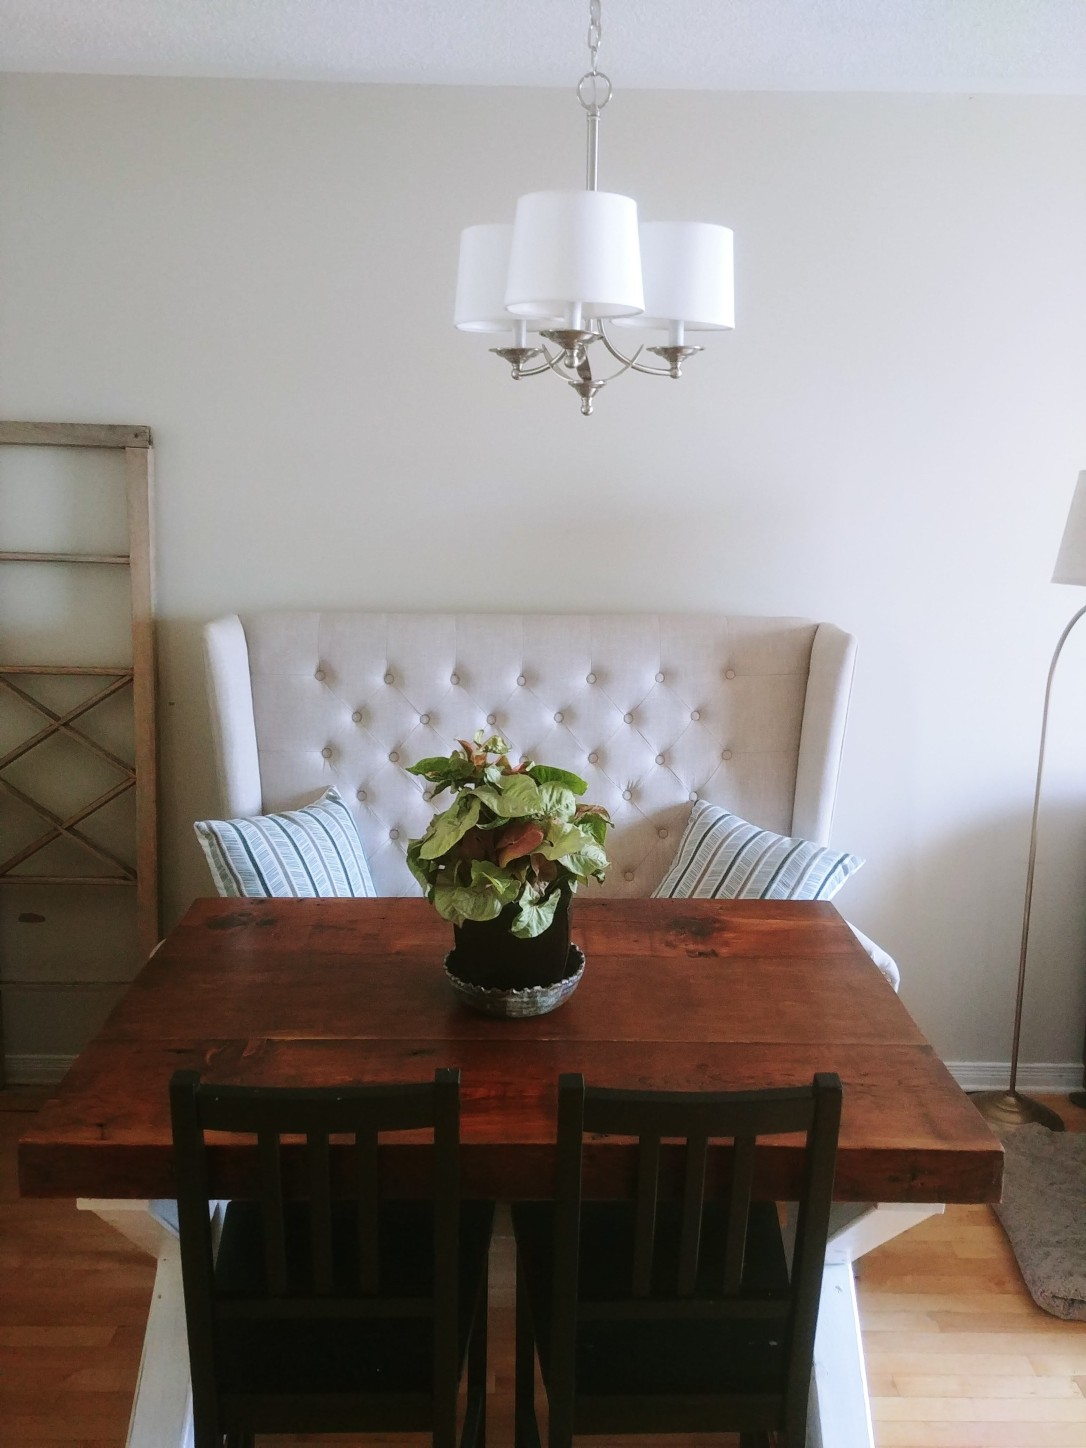 Chandelier with Table